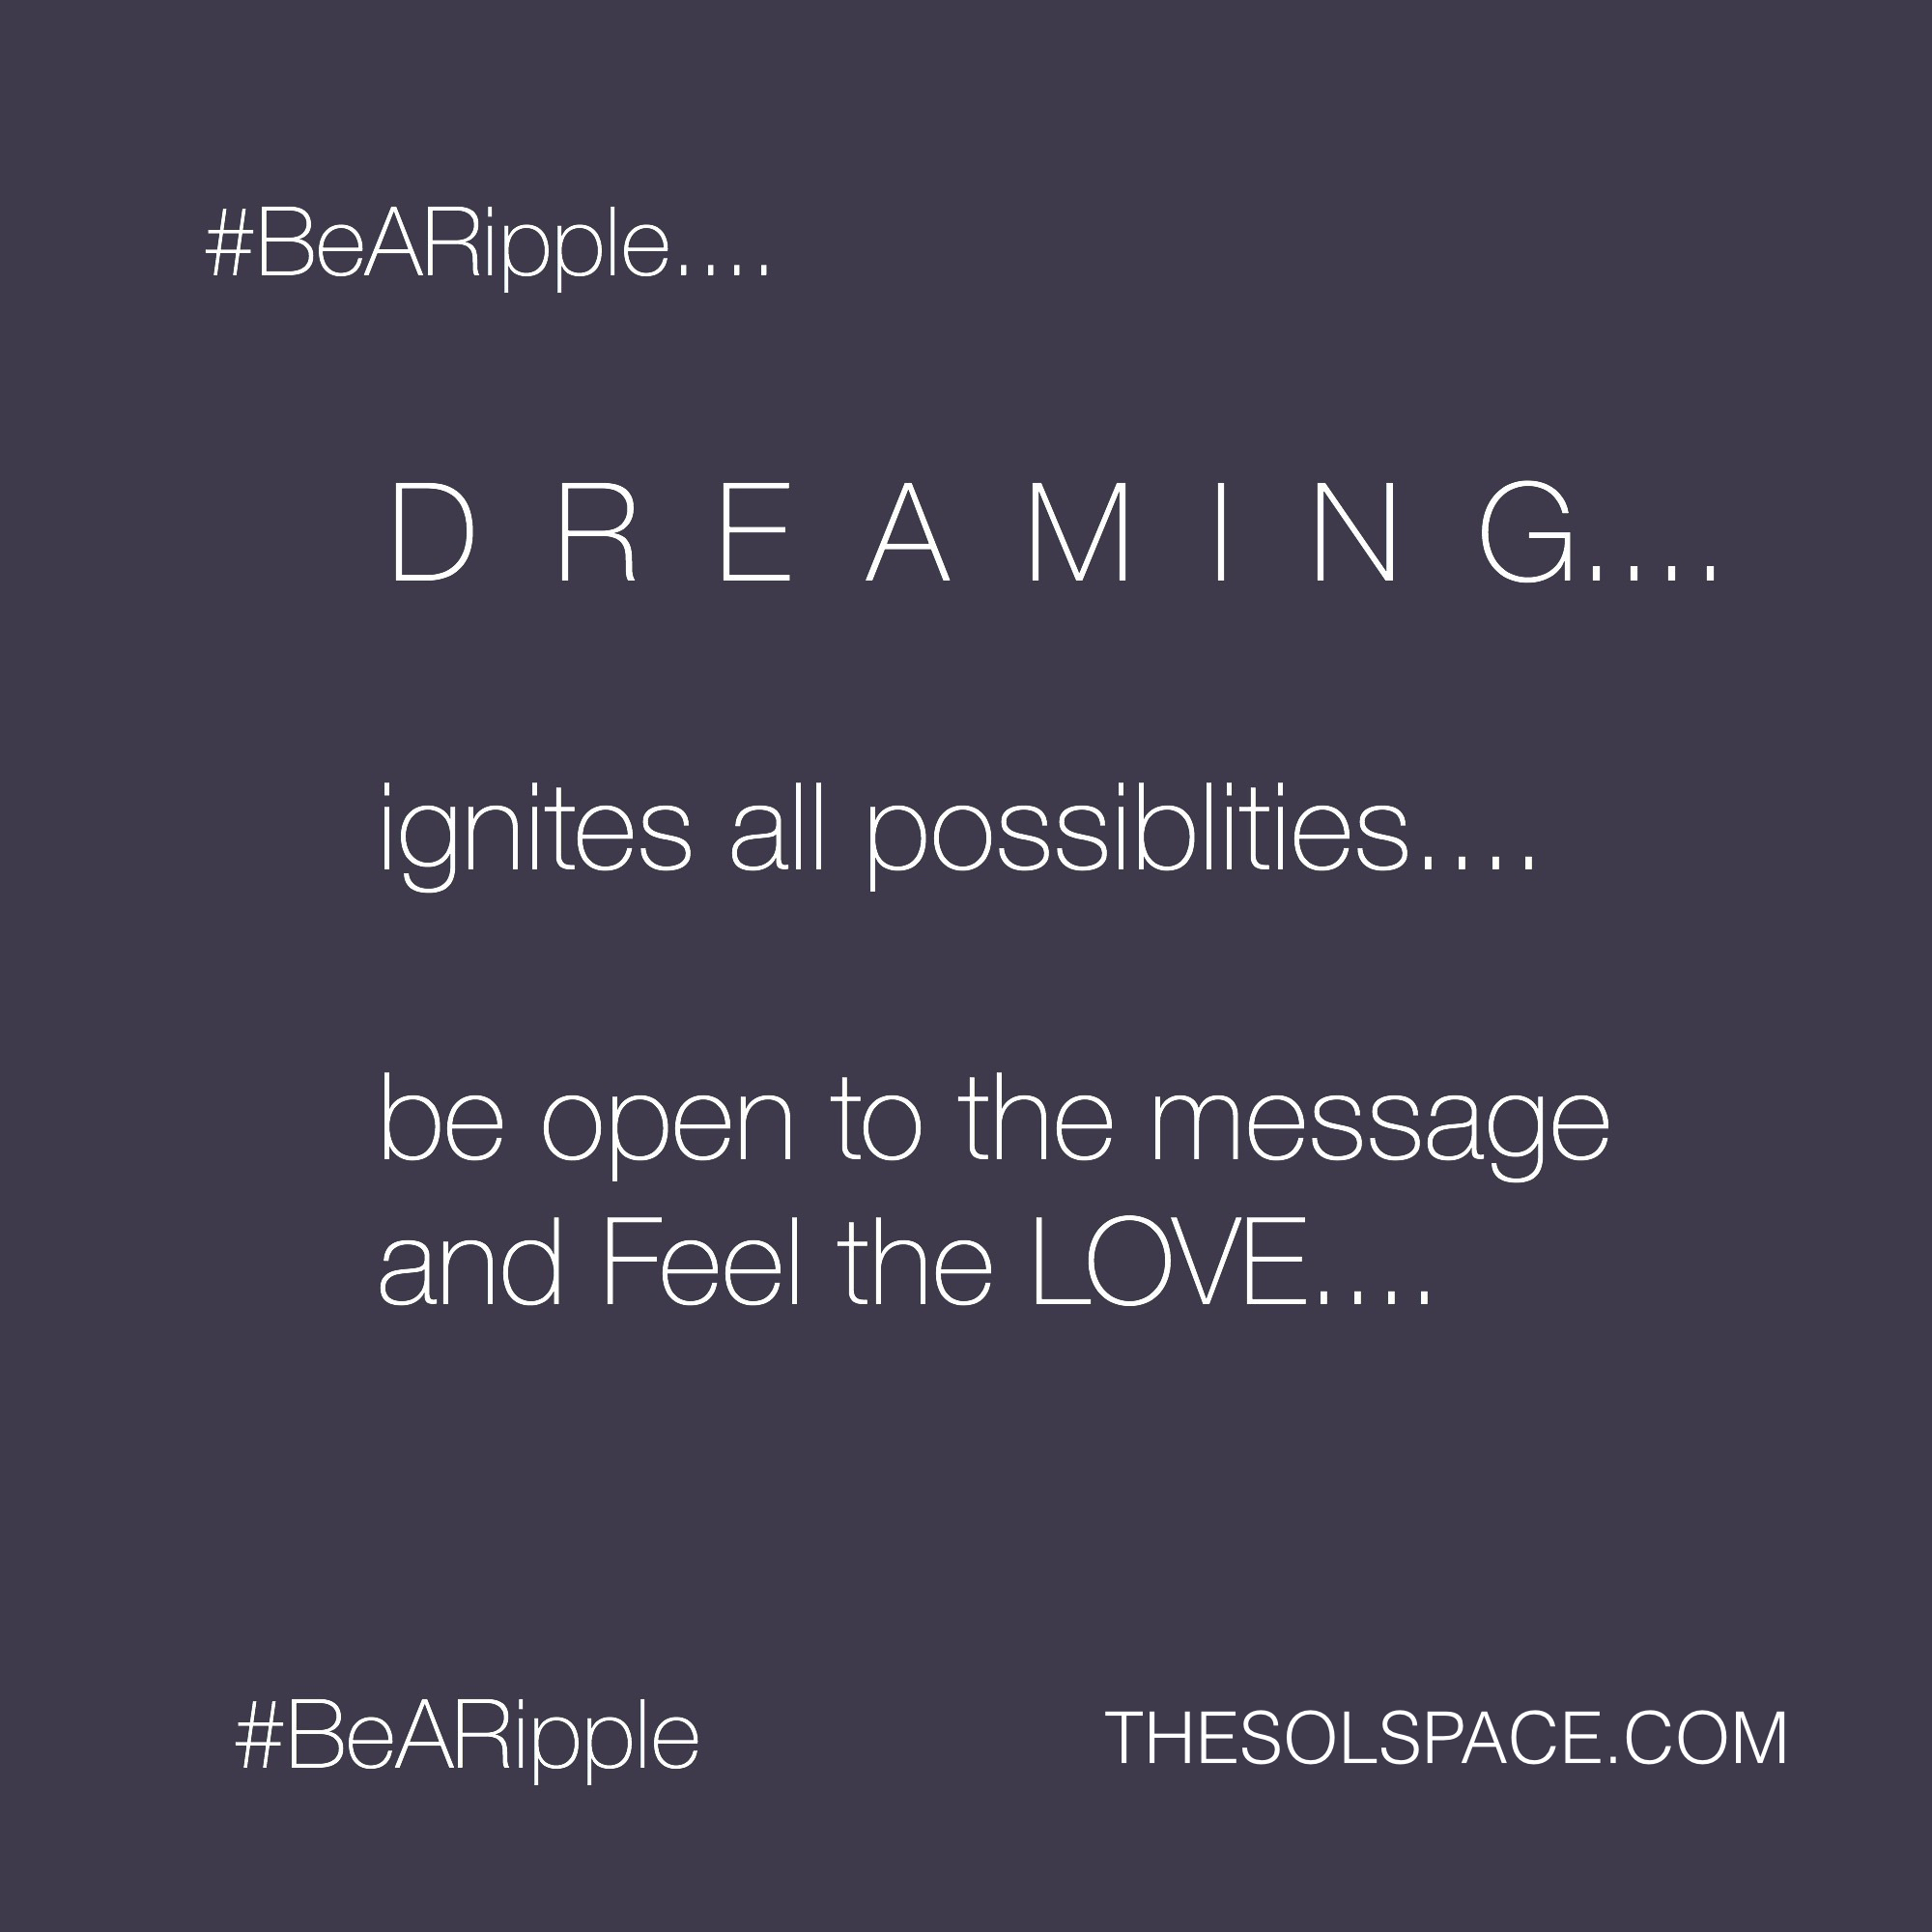 #BeARipple..DREAMING ignites all possibilities...be open to the message and FEEL the LOVE @theSOLspace